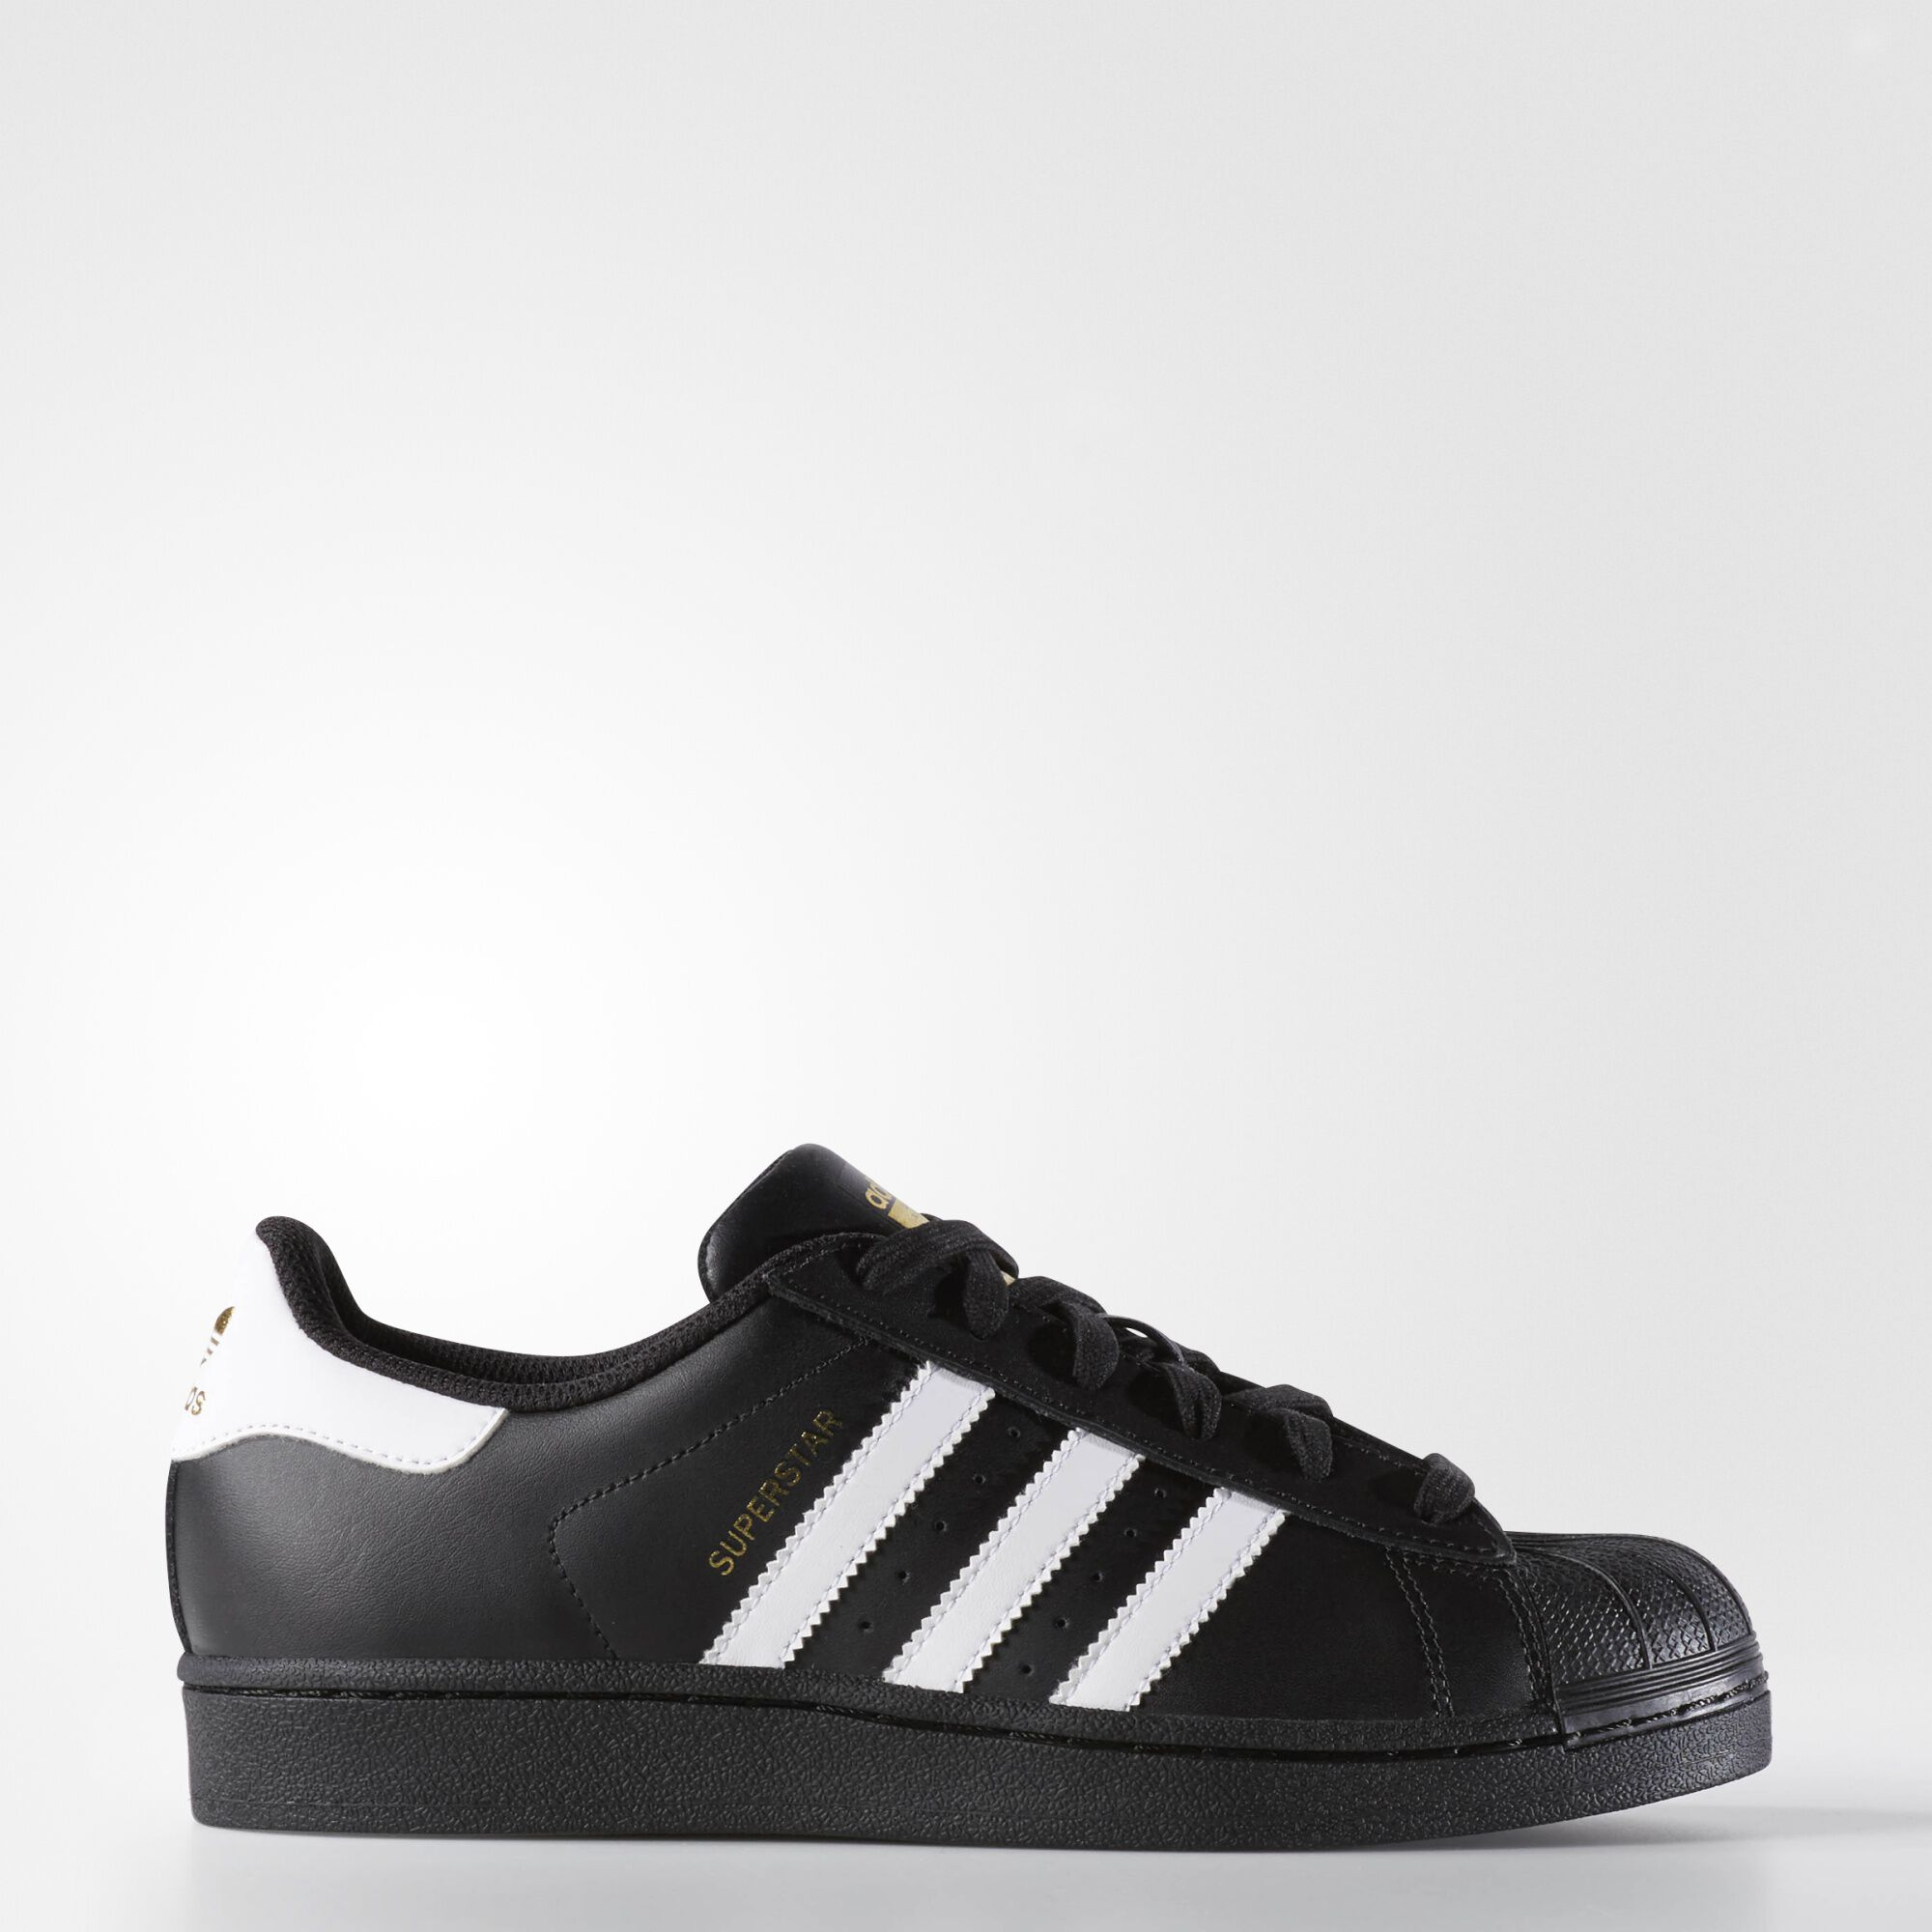 the adidas superstar